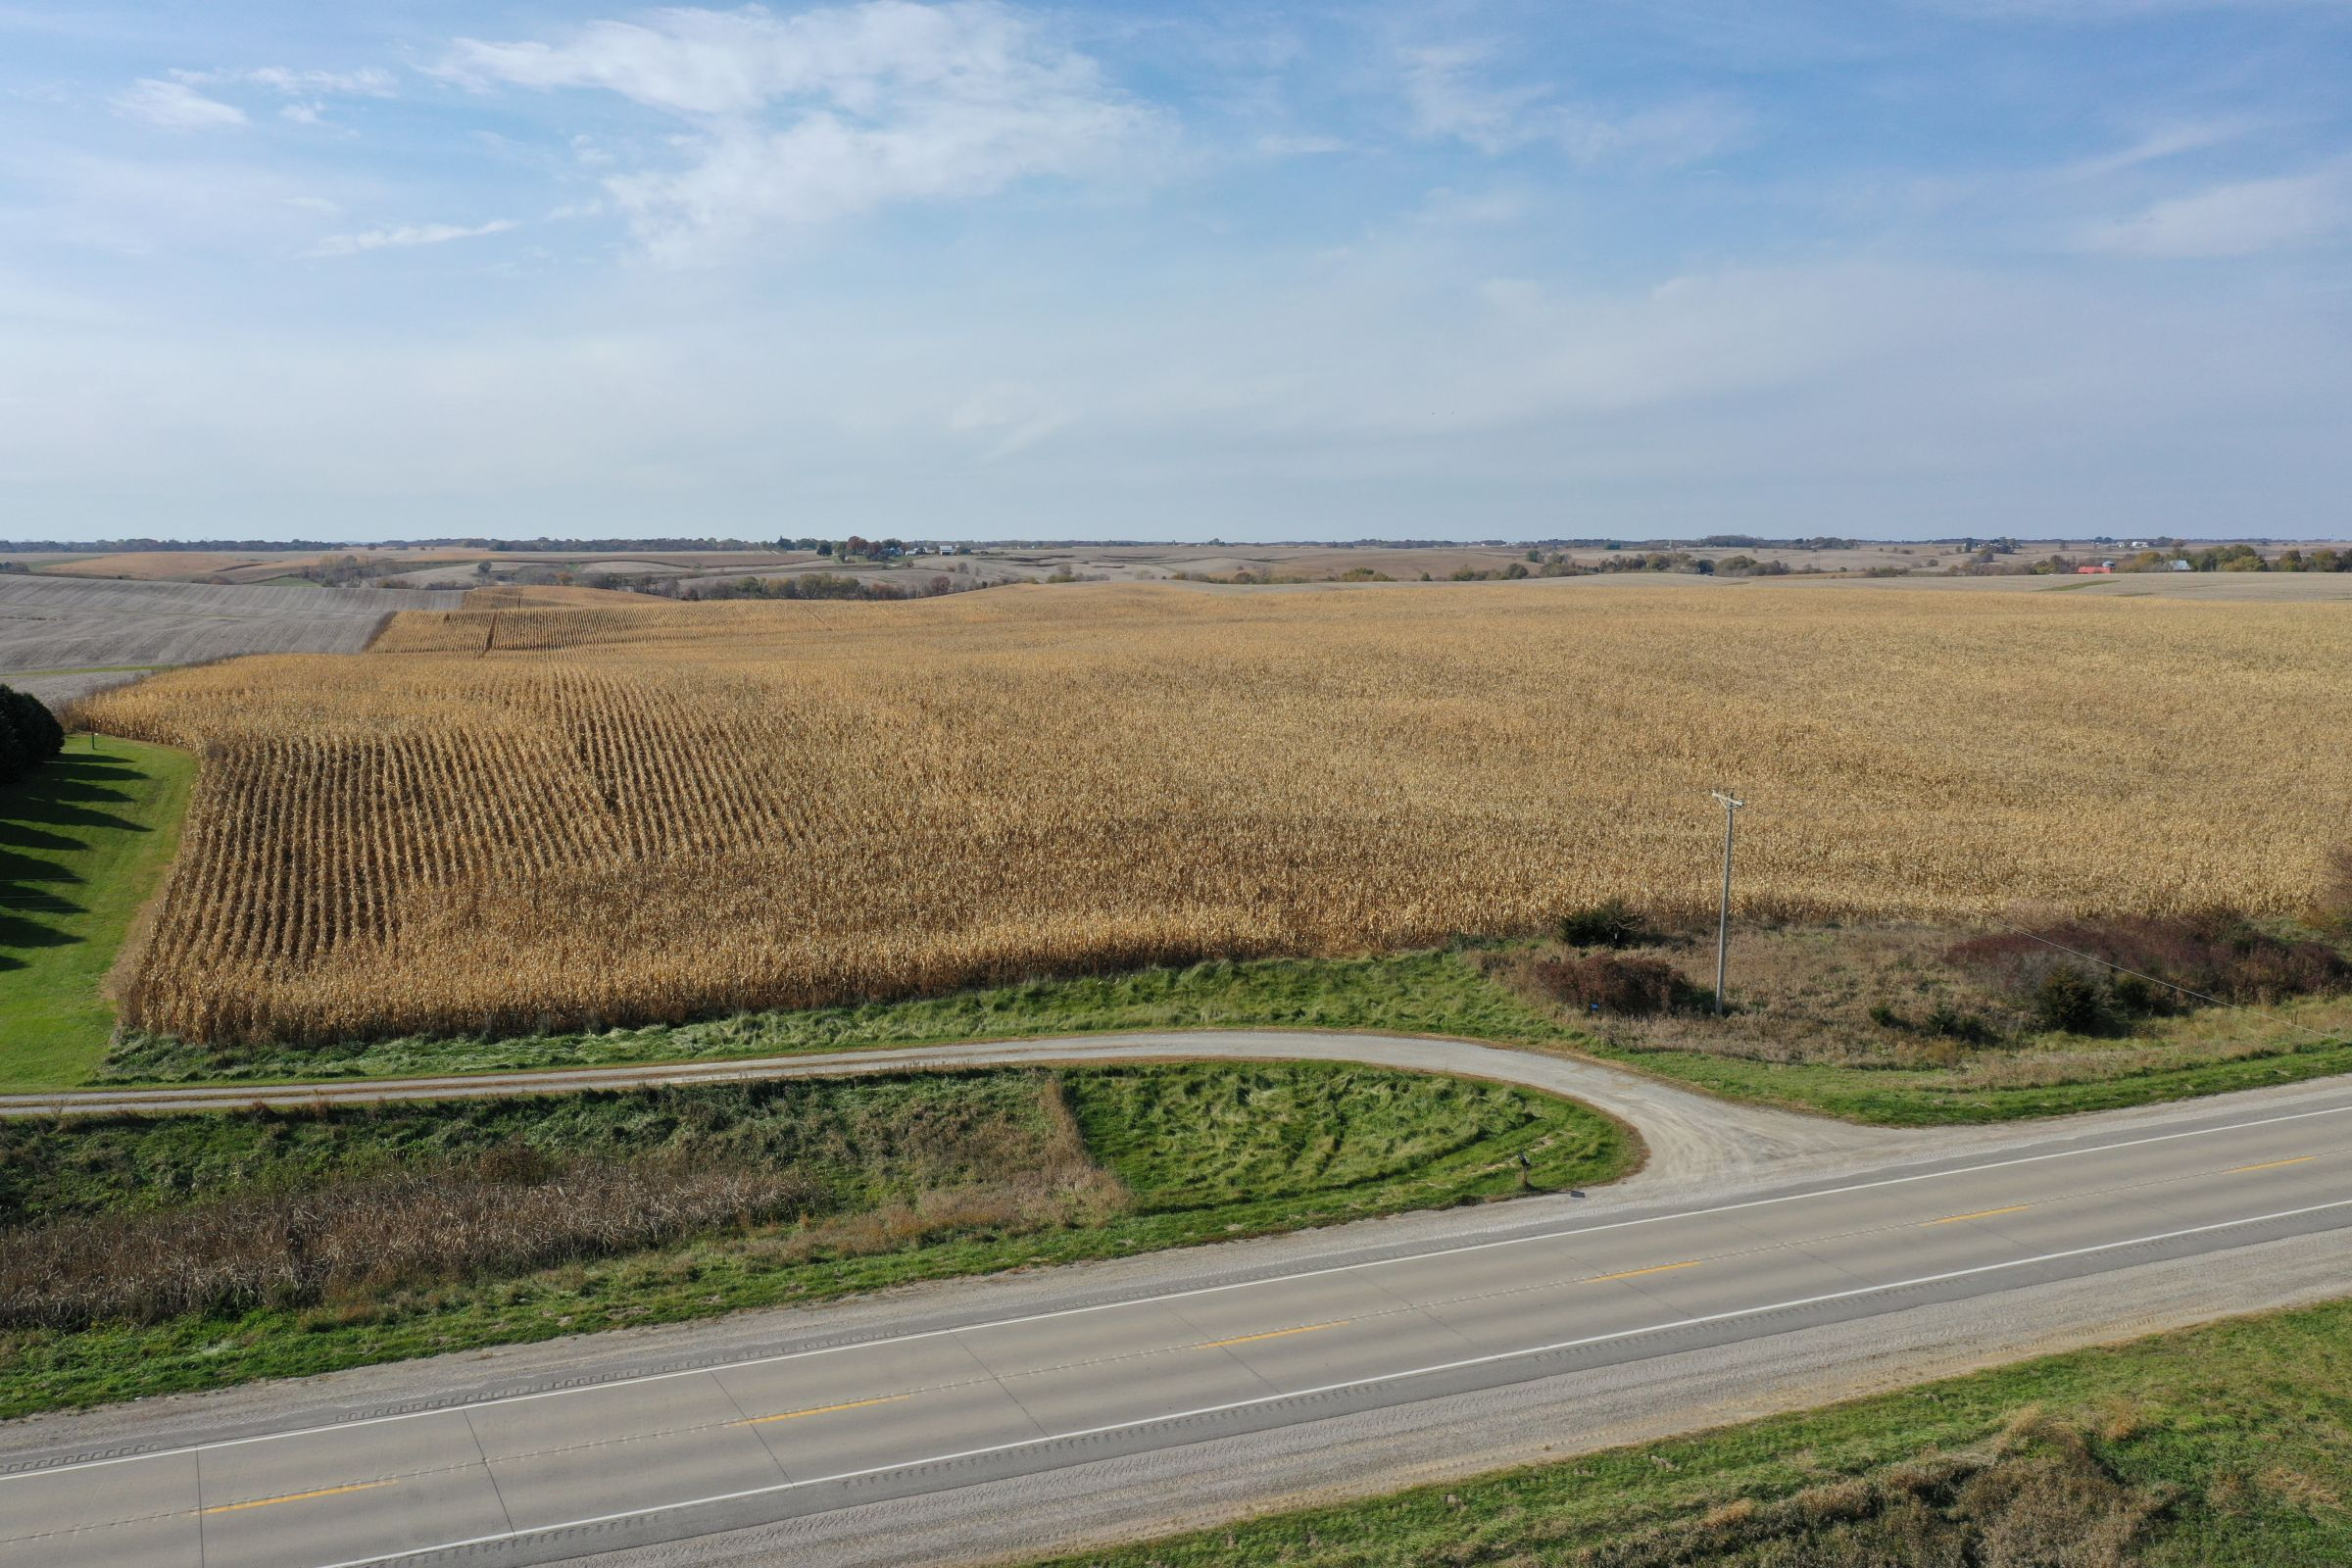 14747-iowa-highway-14-newton-50208-5-2019-10-28-212659.JPG